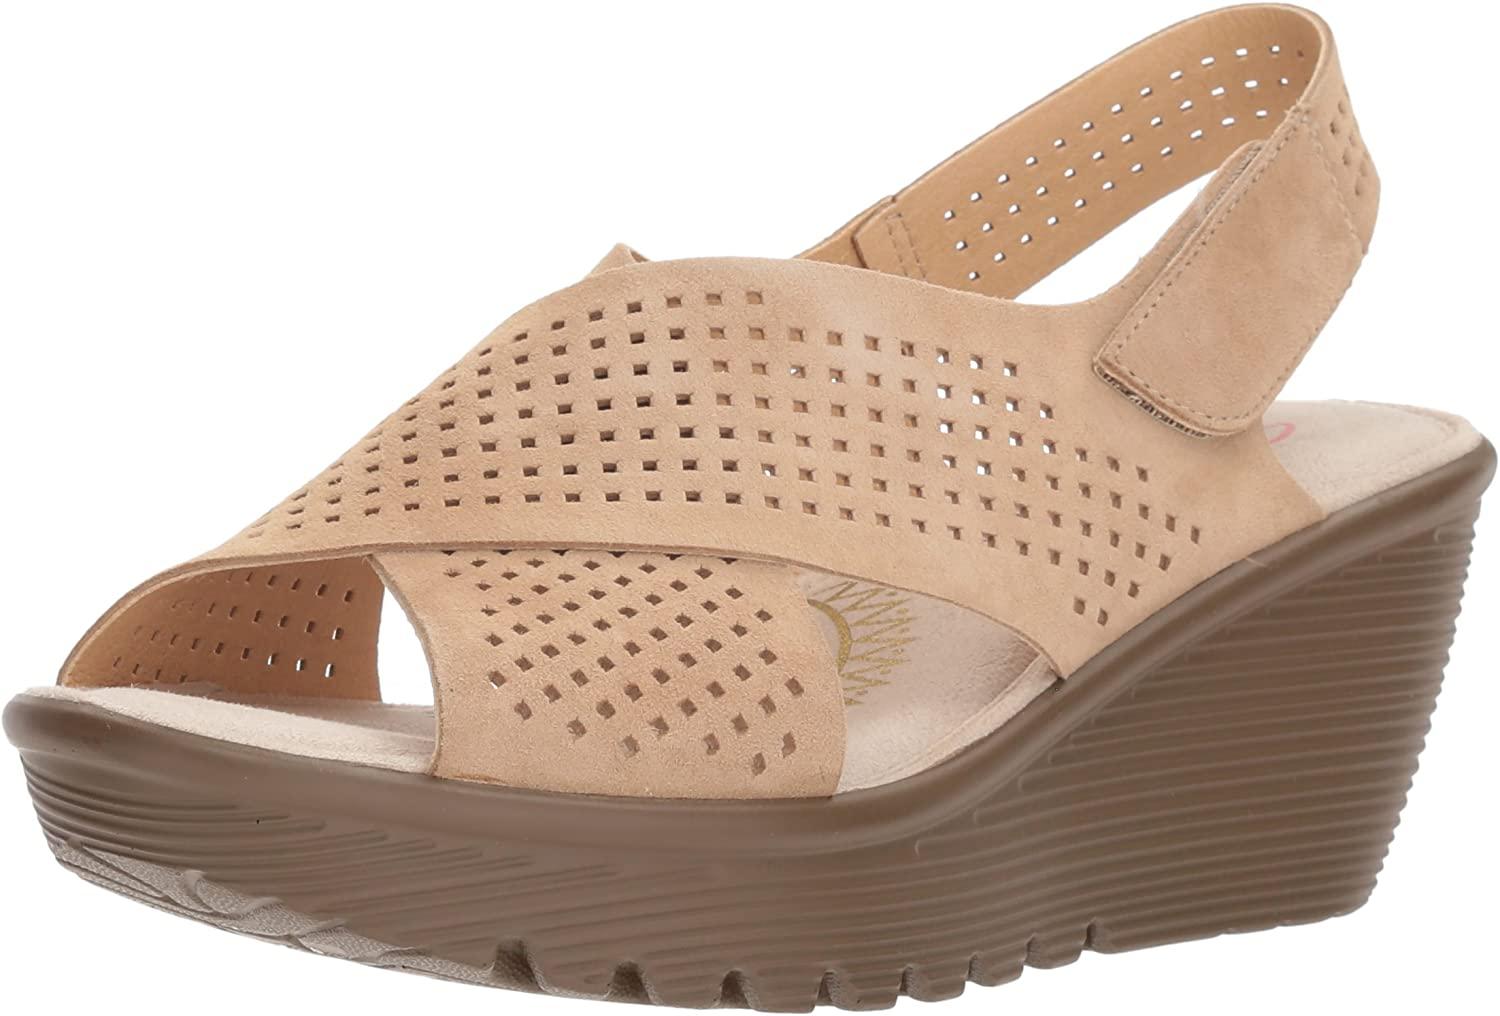 Skechers Womens Parallel - Infrastructure Wedge Sandal